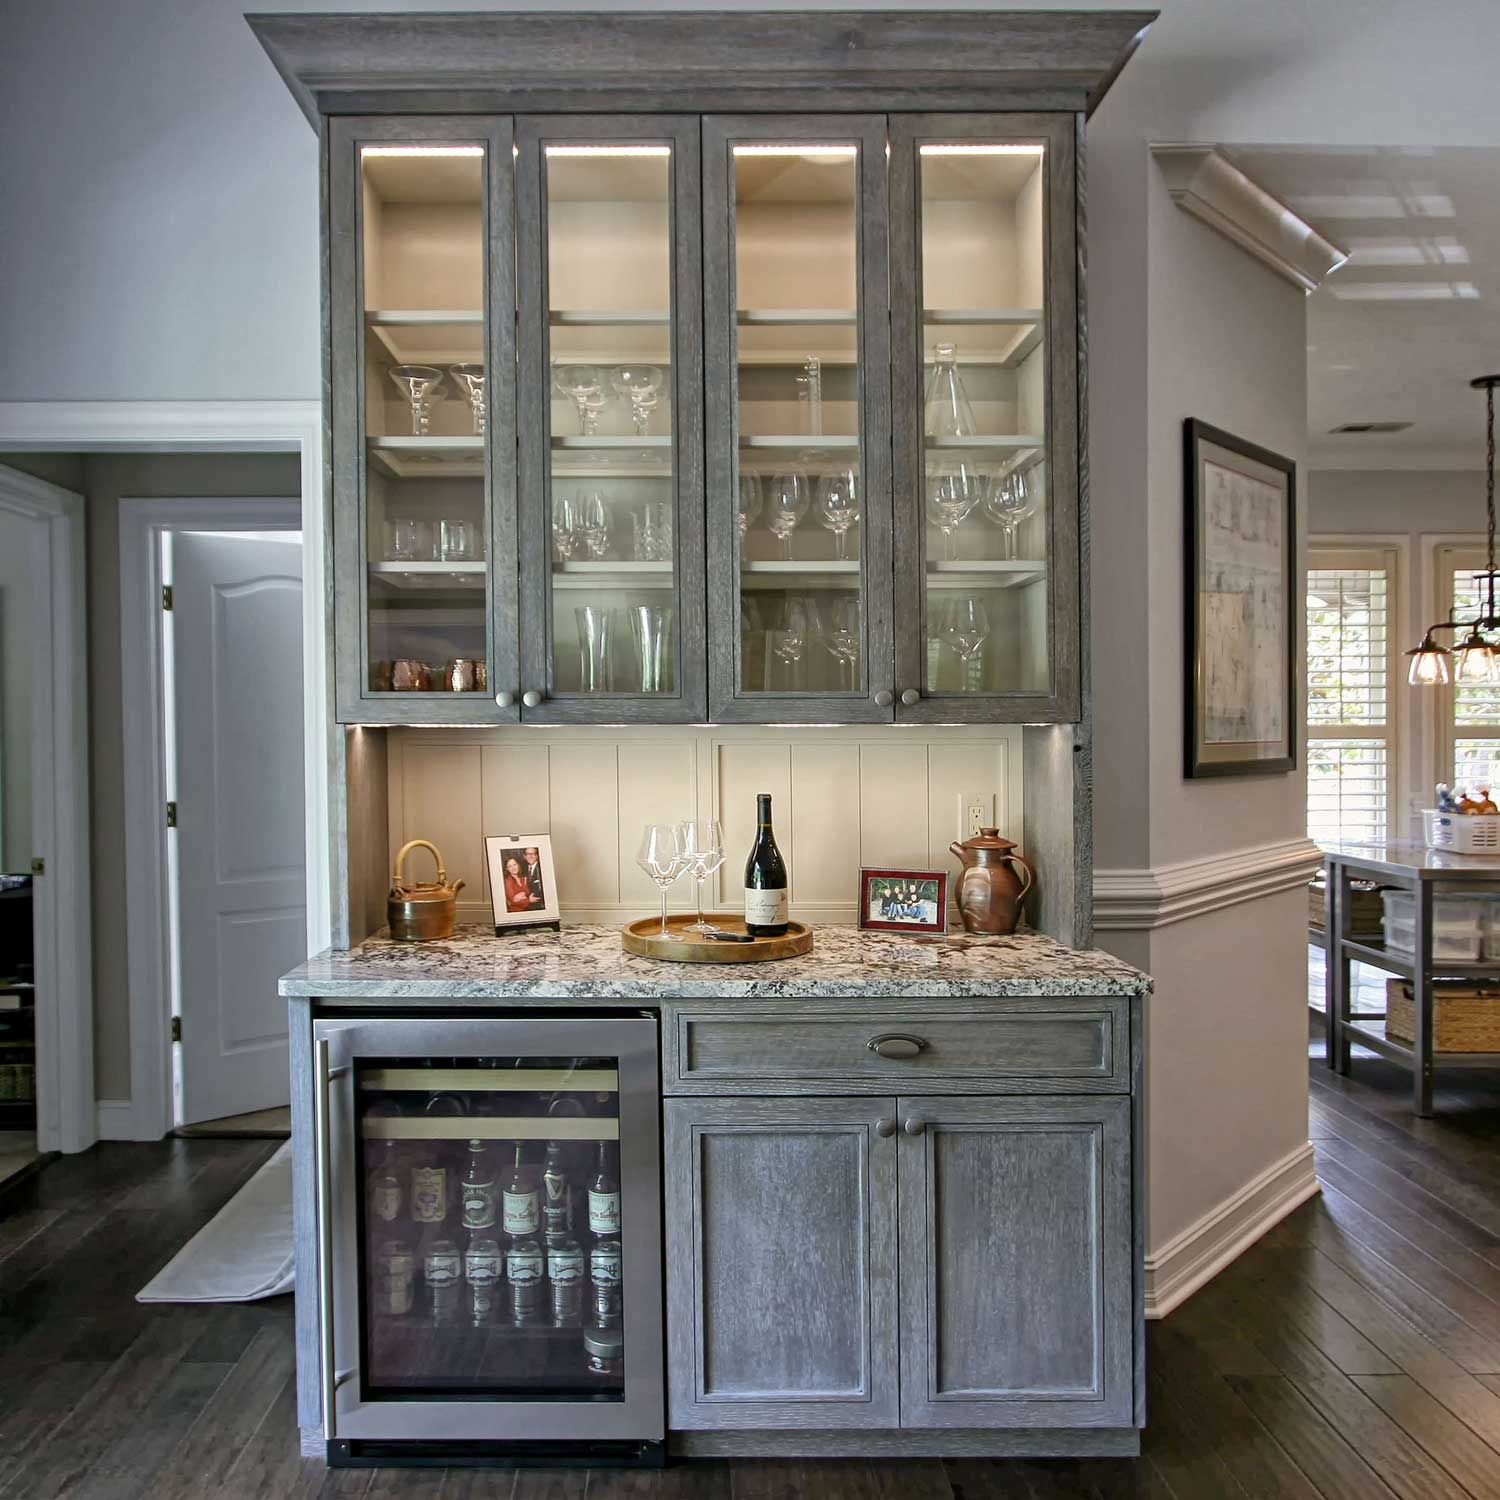 Oak is making a comeback see how this kitchen remodel for Oak cabinets kitchen ideas